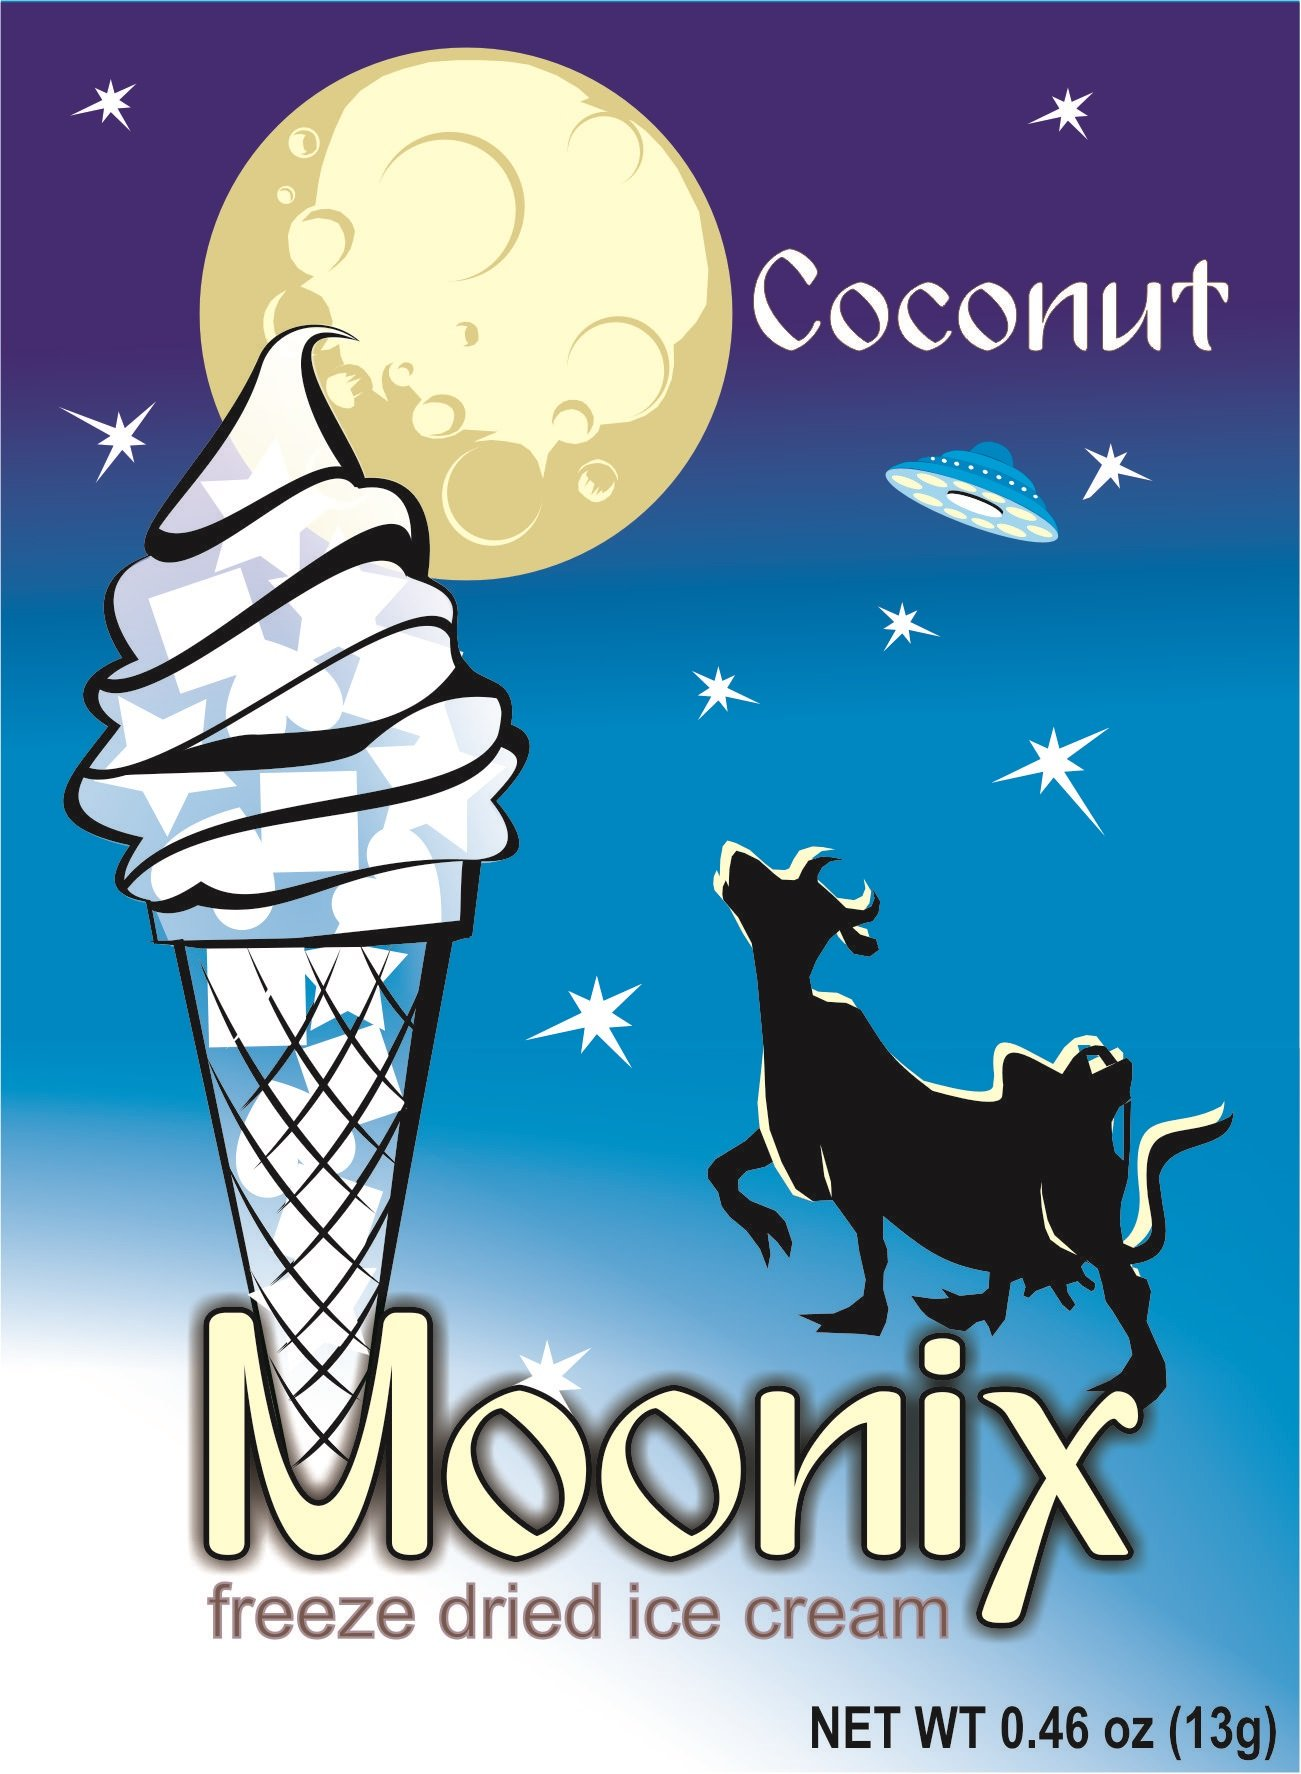 Moonix Freeze Dried Ice Cream (Coconut)